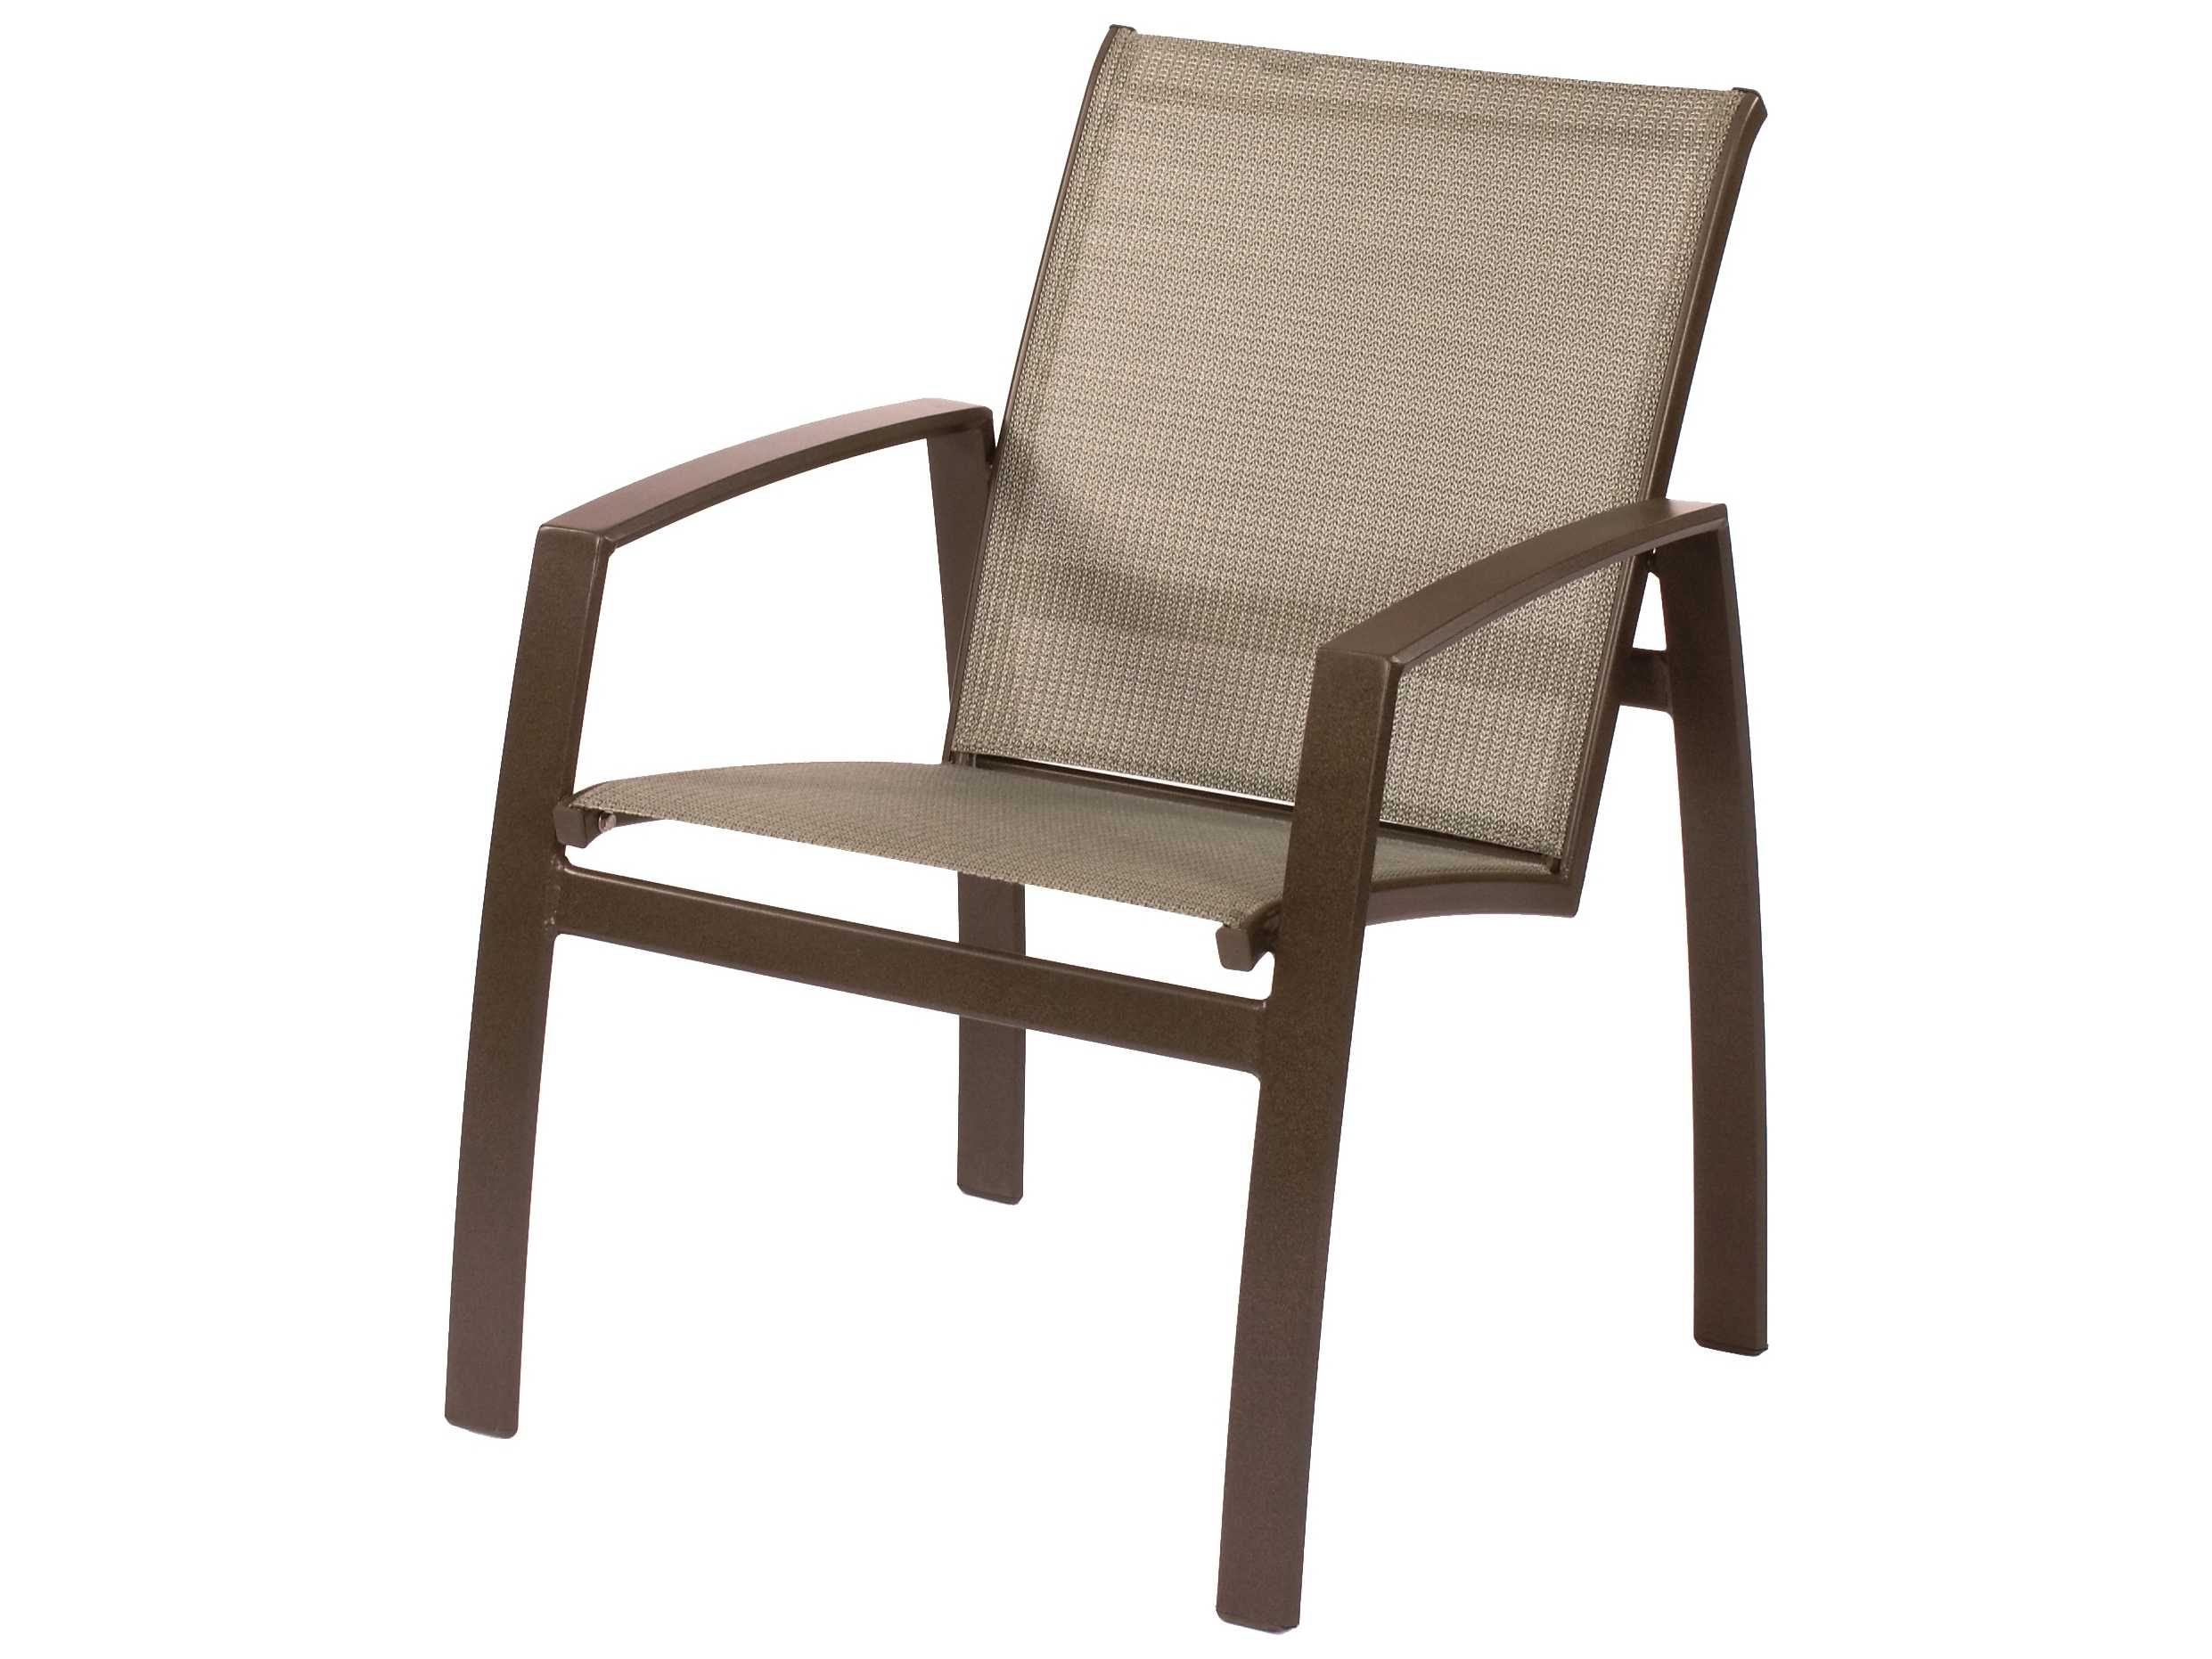 Suncoast Vision Sling Cast Aluminum Arm Dining Chair